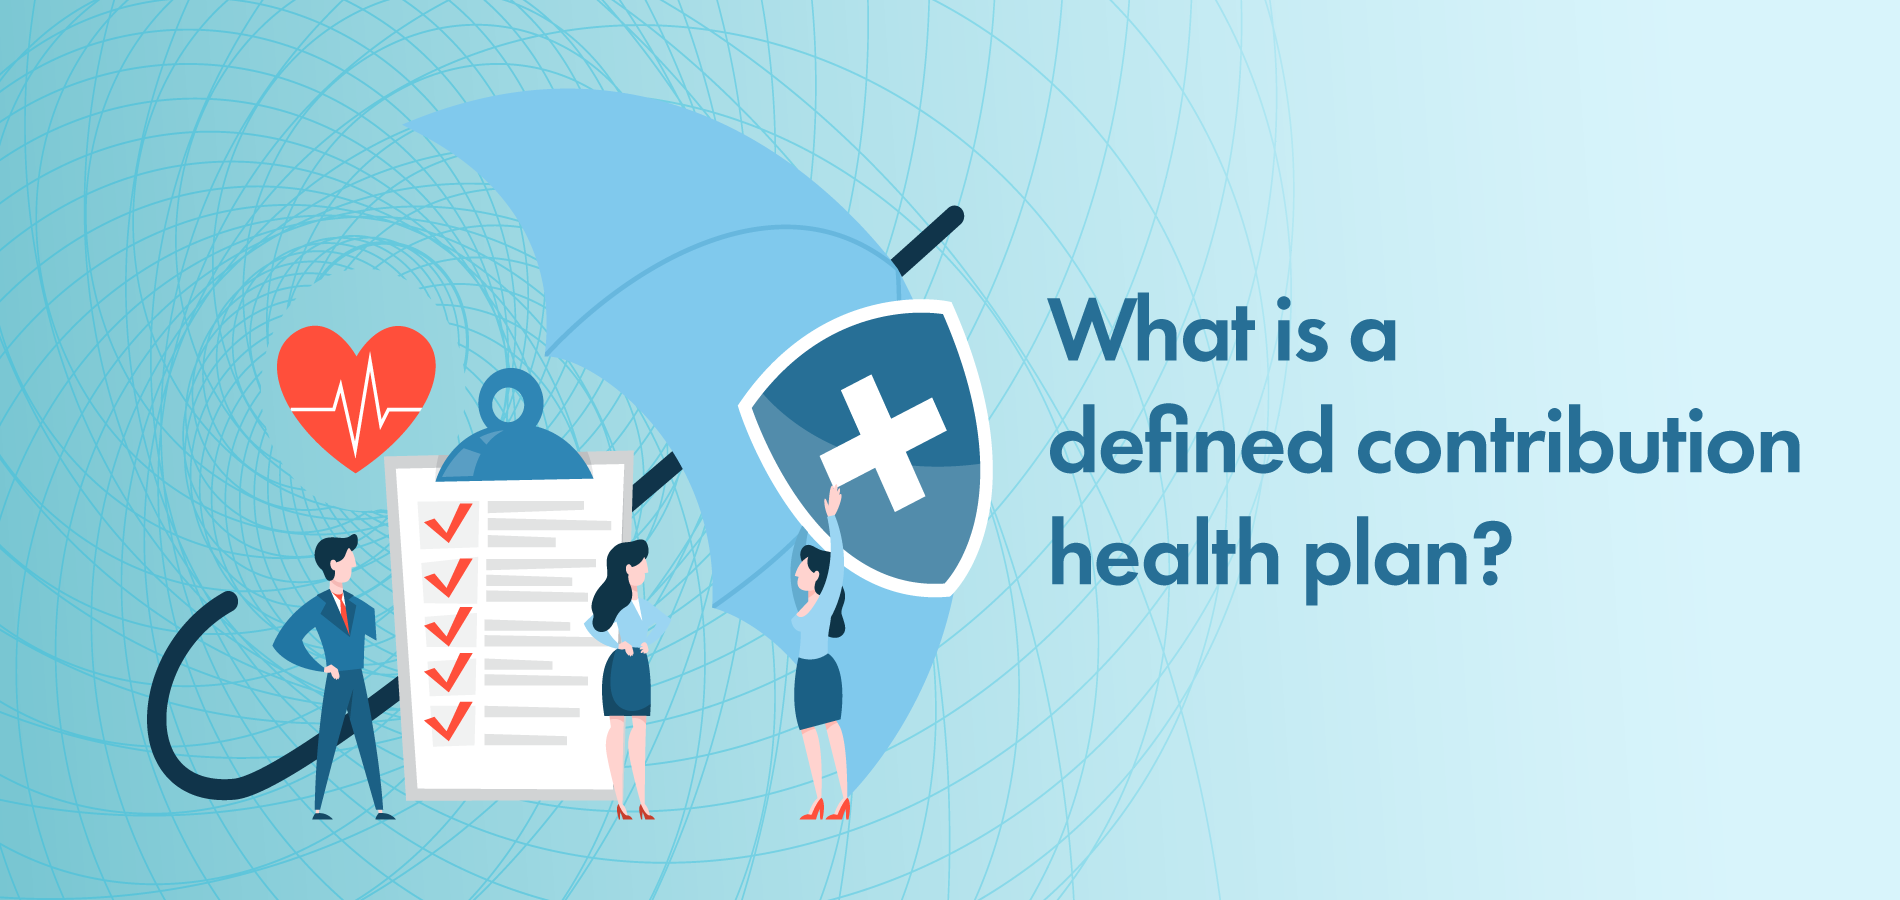 Defined contribution health plan banner